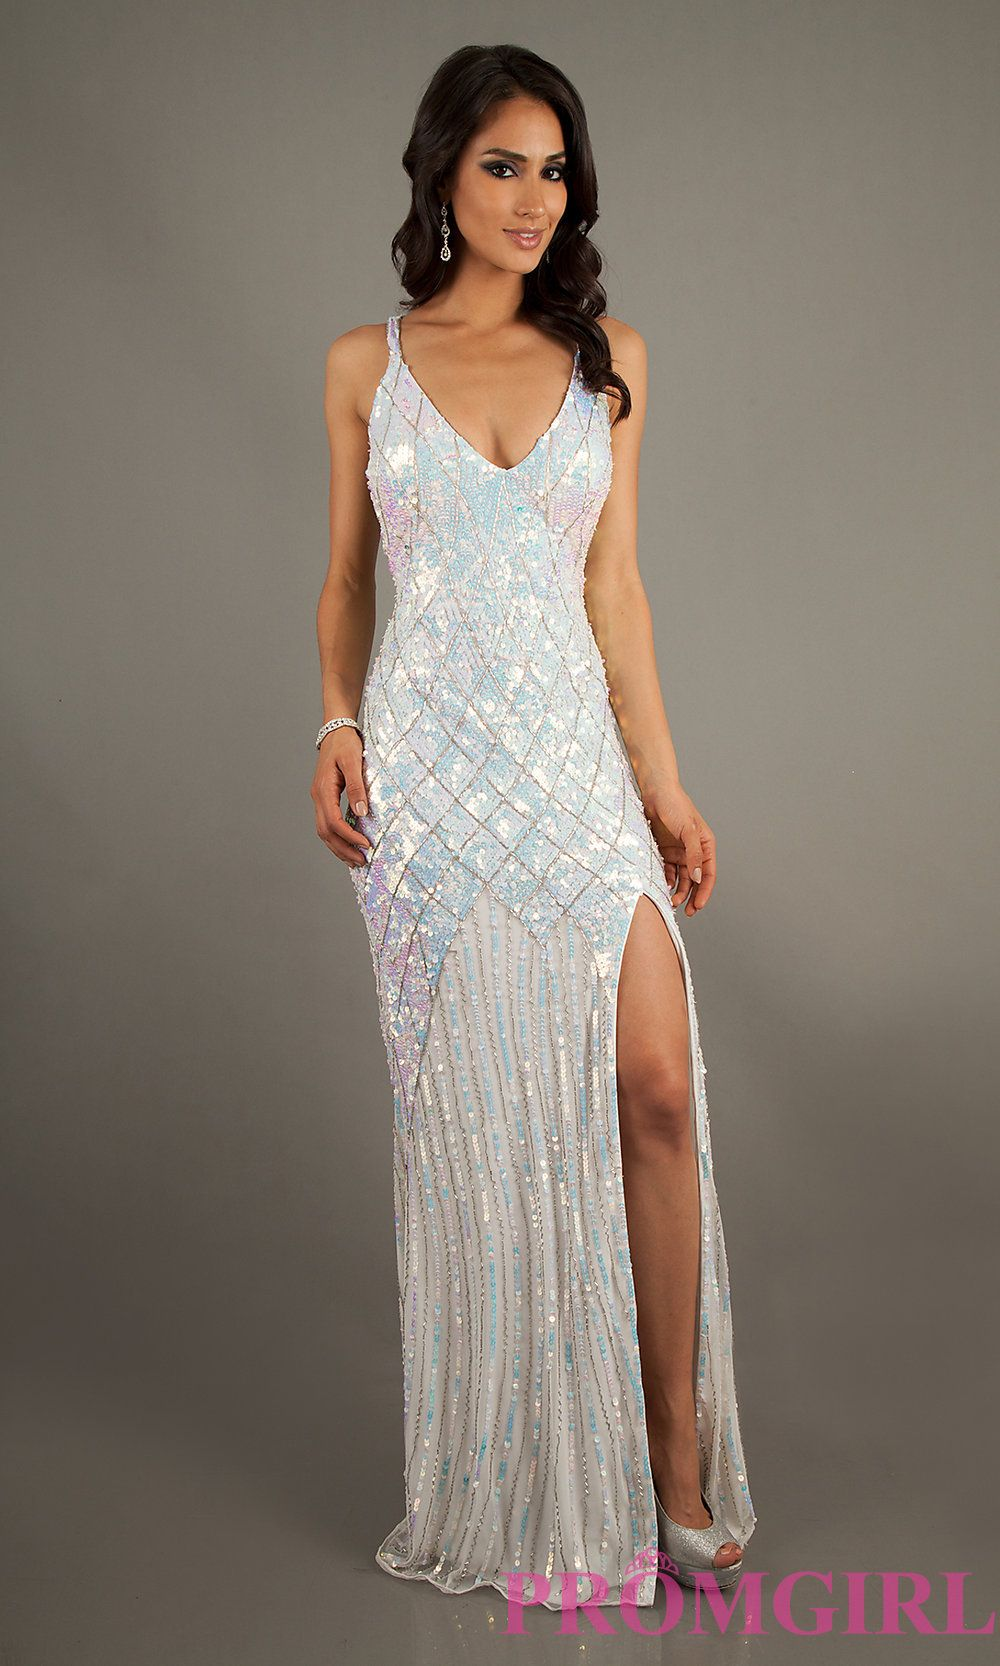 Long sequin prom dresses primavera sequin formal gowns promgirl